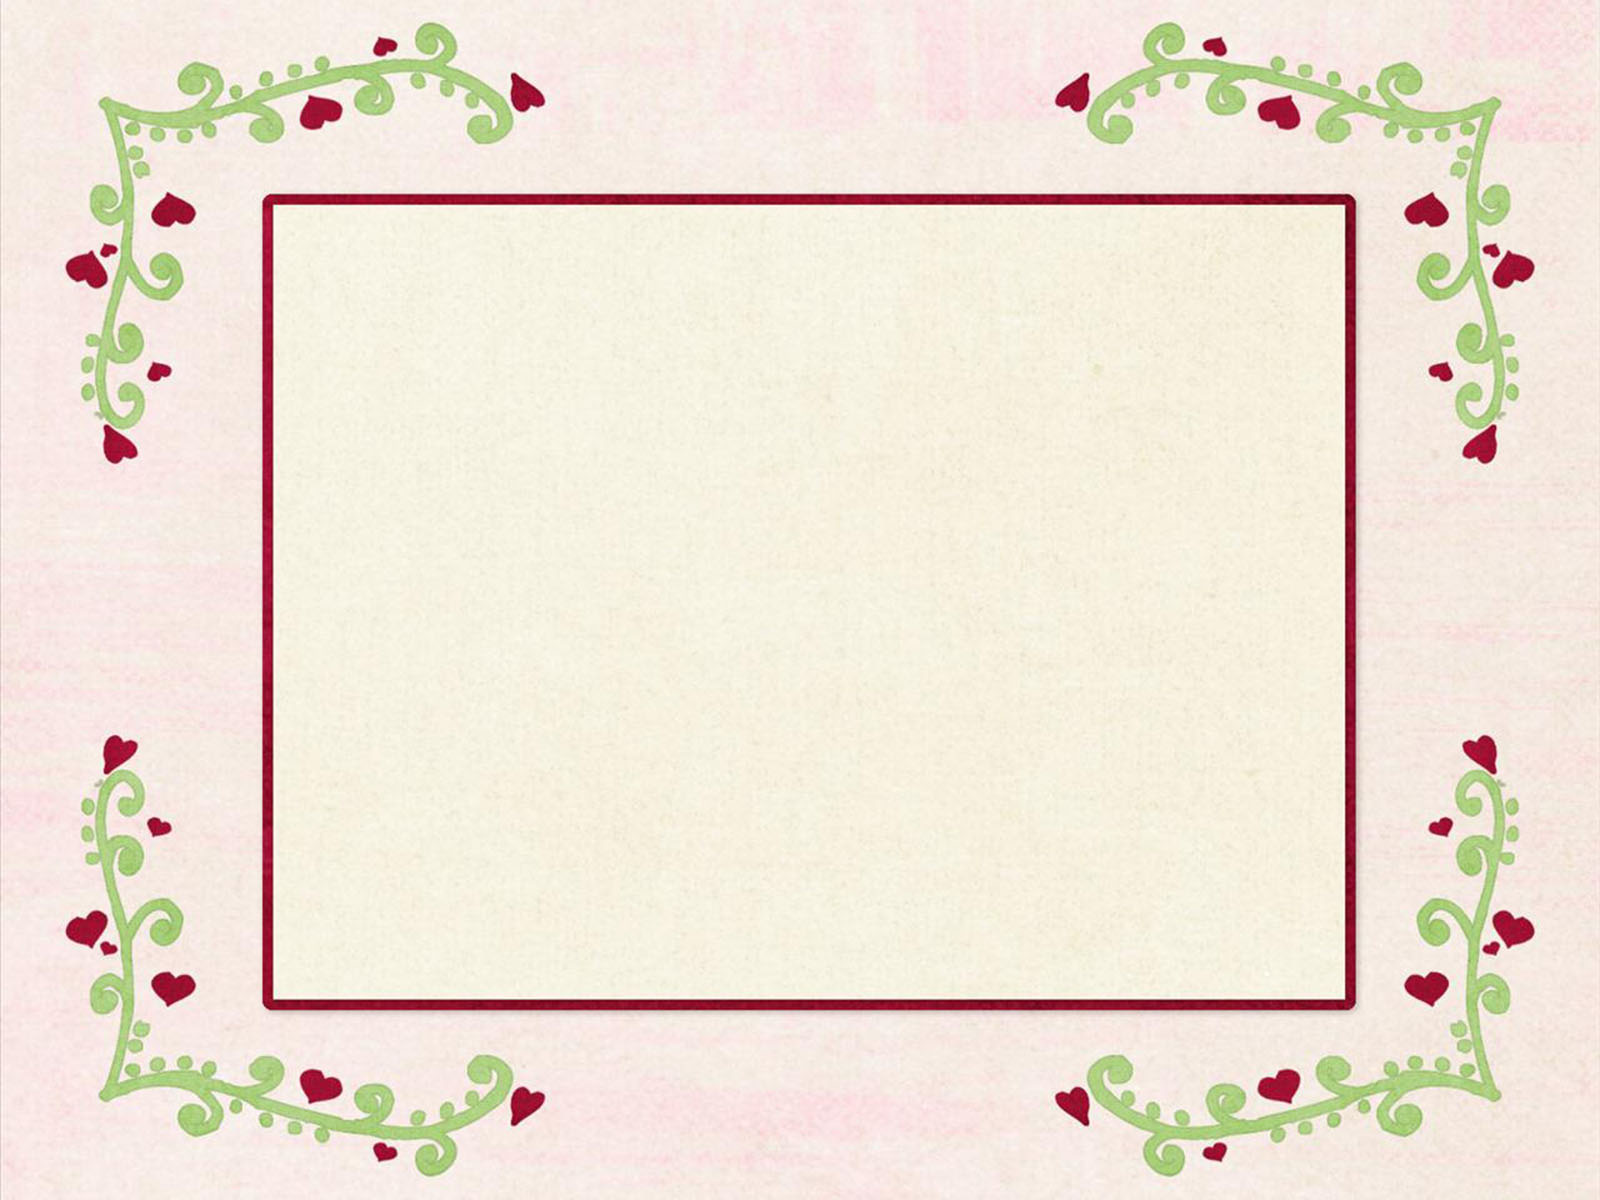 Pattern border PowerPoint background